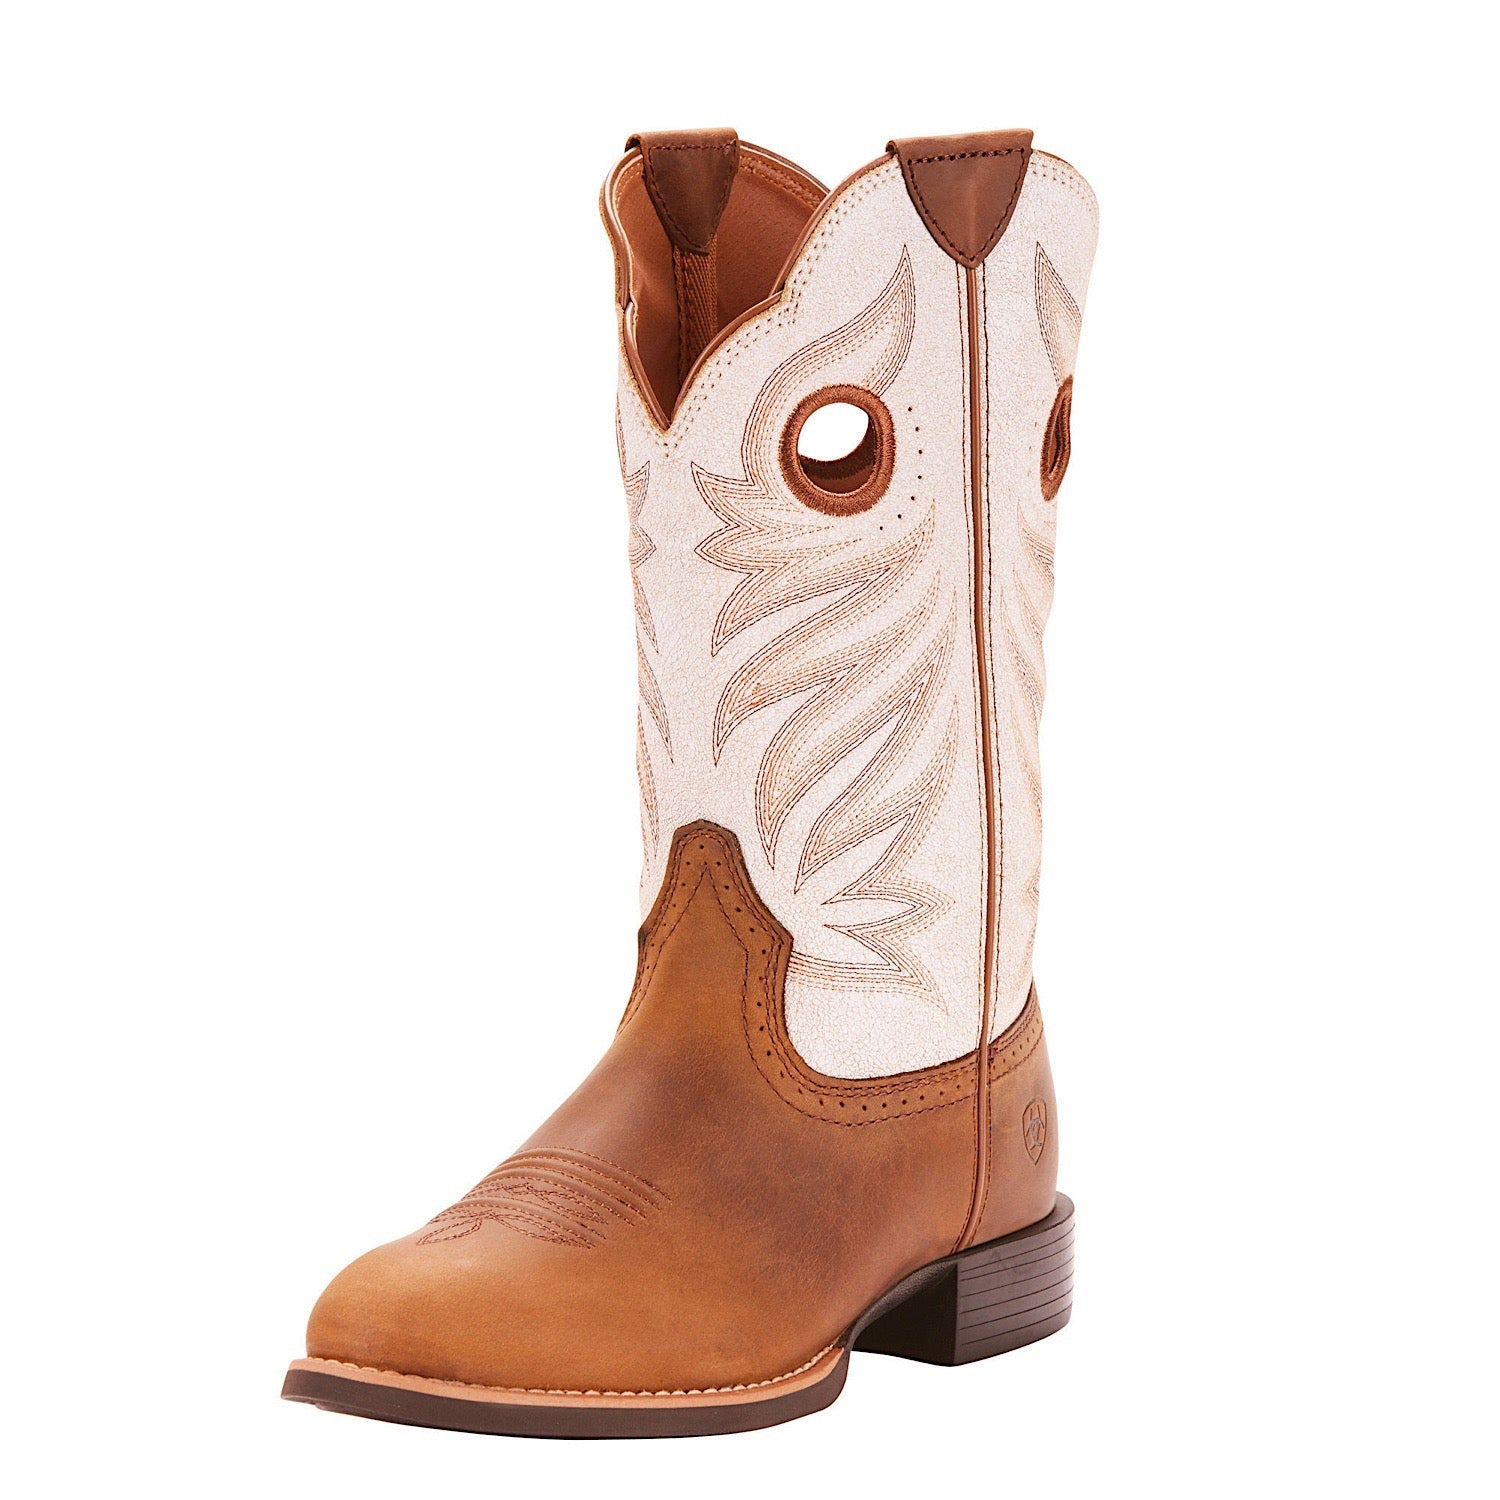 9ef9a2107fe Ariat Women's Round Up Stockman Crushed Peanut/Birch